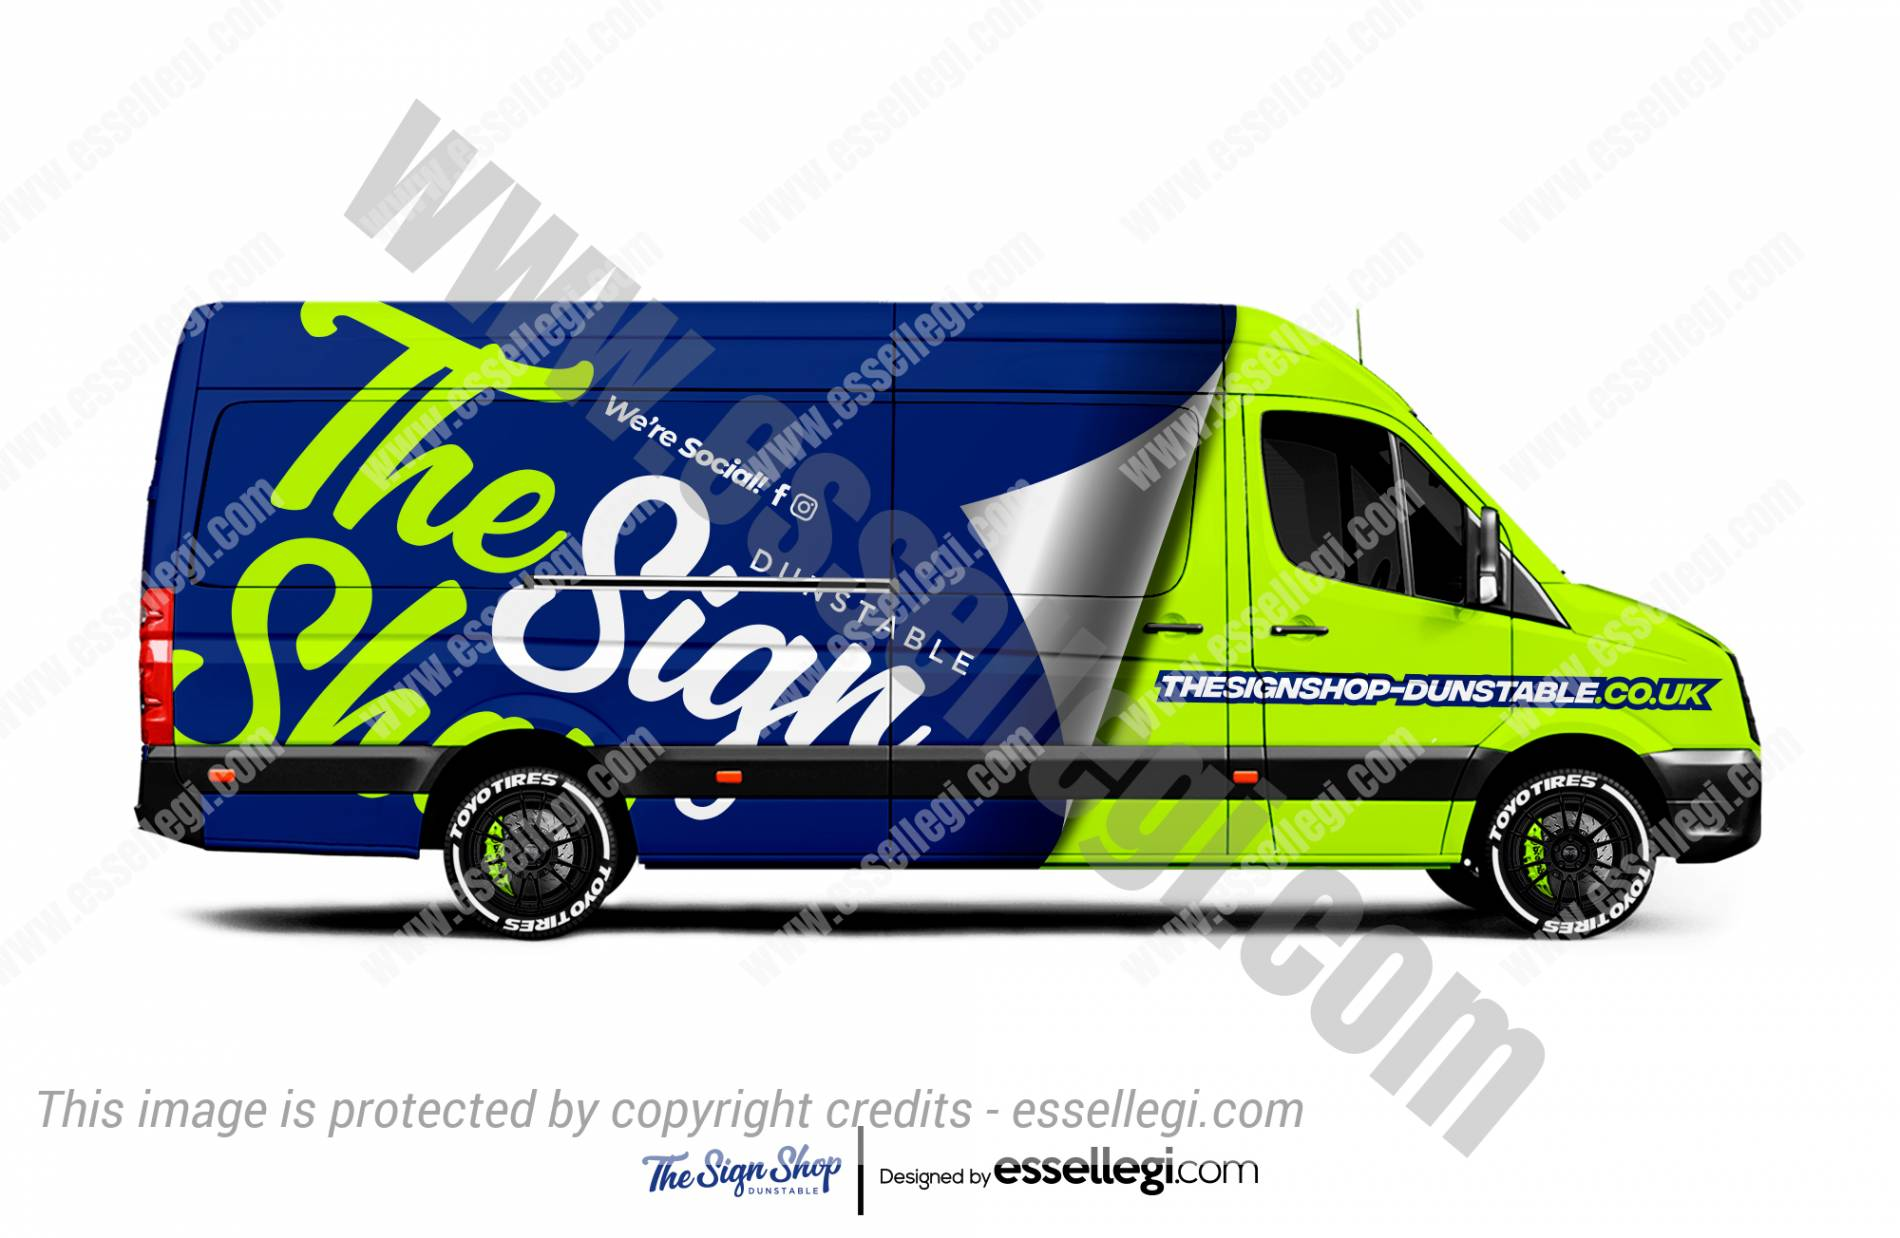 VW Crafter Wrap Design. VW Crafter Custom Wrap | Van Wrap Design by Essellegi. Van Signs, Van Signage, Van Wrapping, Van Signwriting, Van Wrap Designer, Signs for Van, Van Logo, Van Graphic by Essellegi.